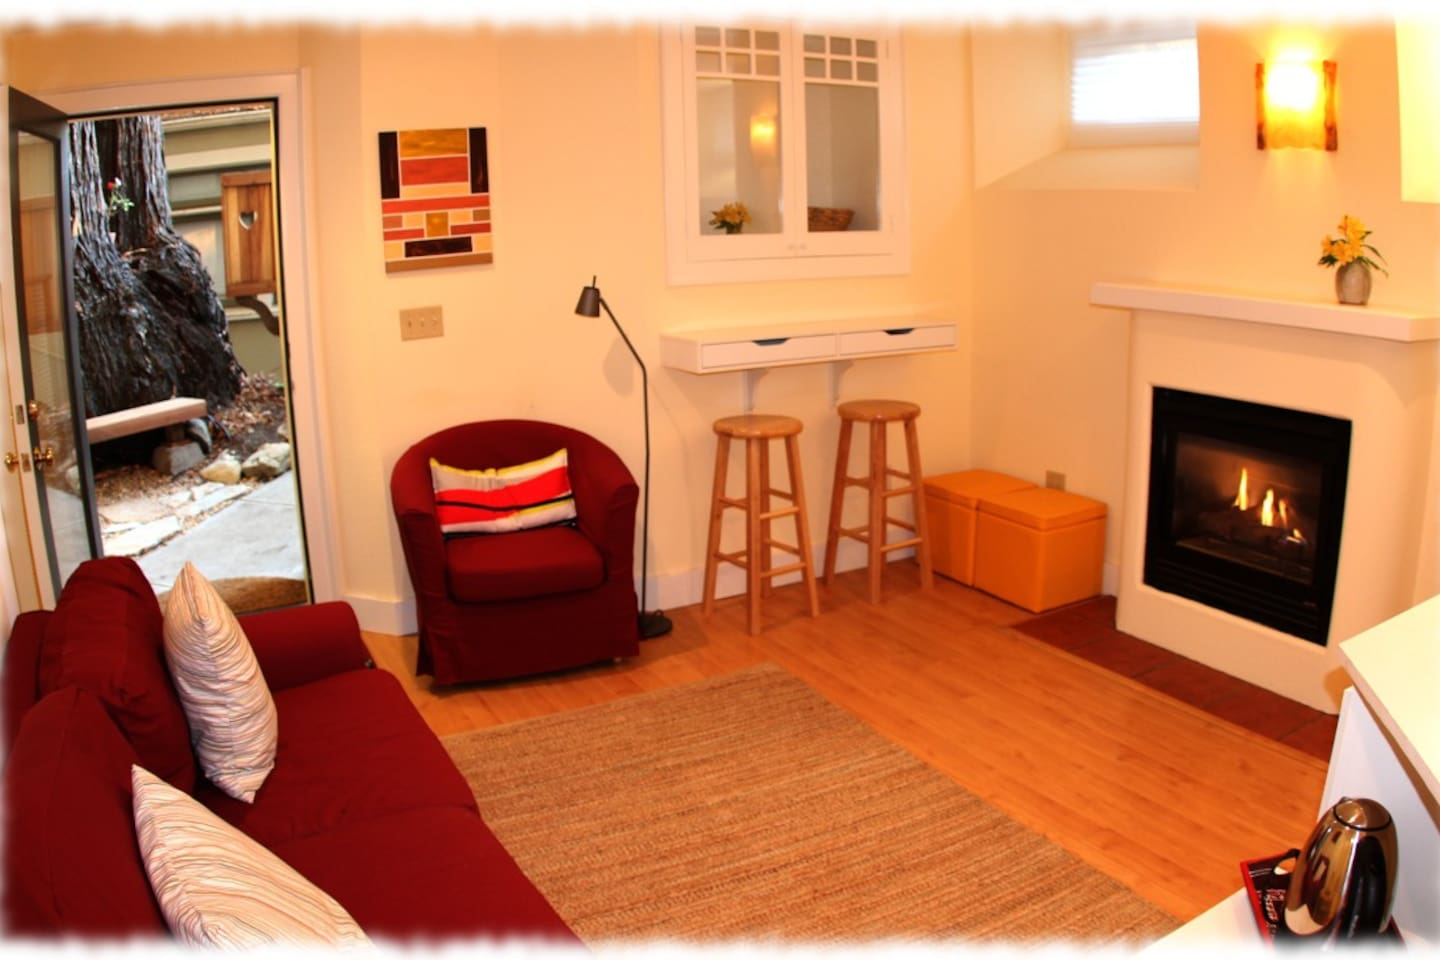 Front room with fireplace and kitchenette